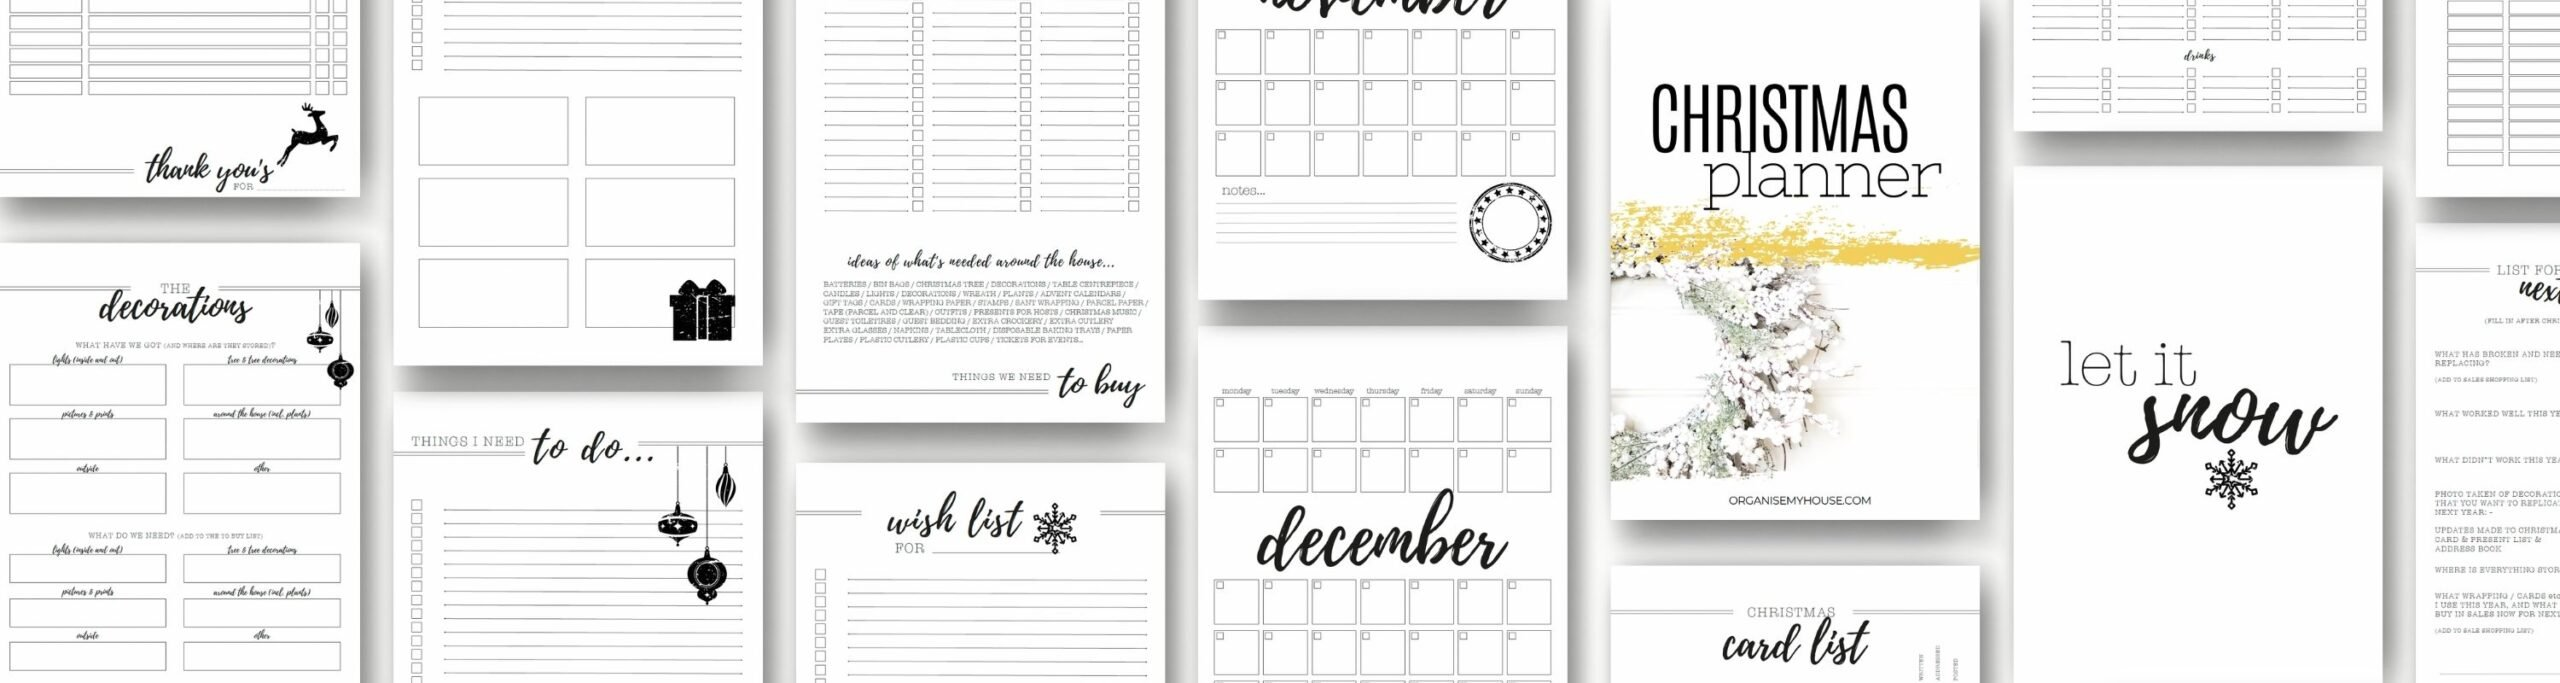 Christmas Planner Pages Long 1